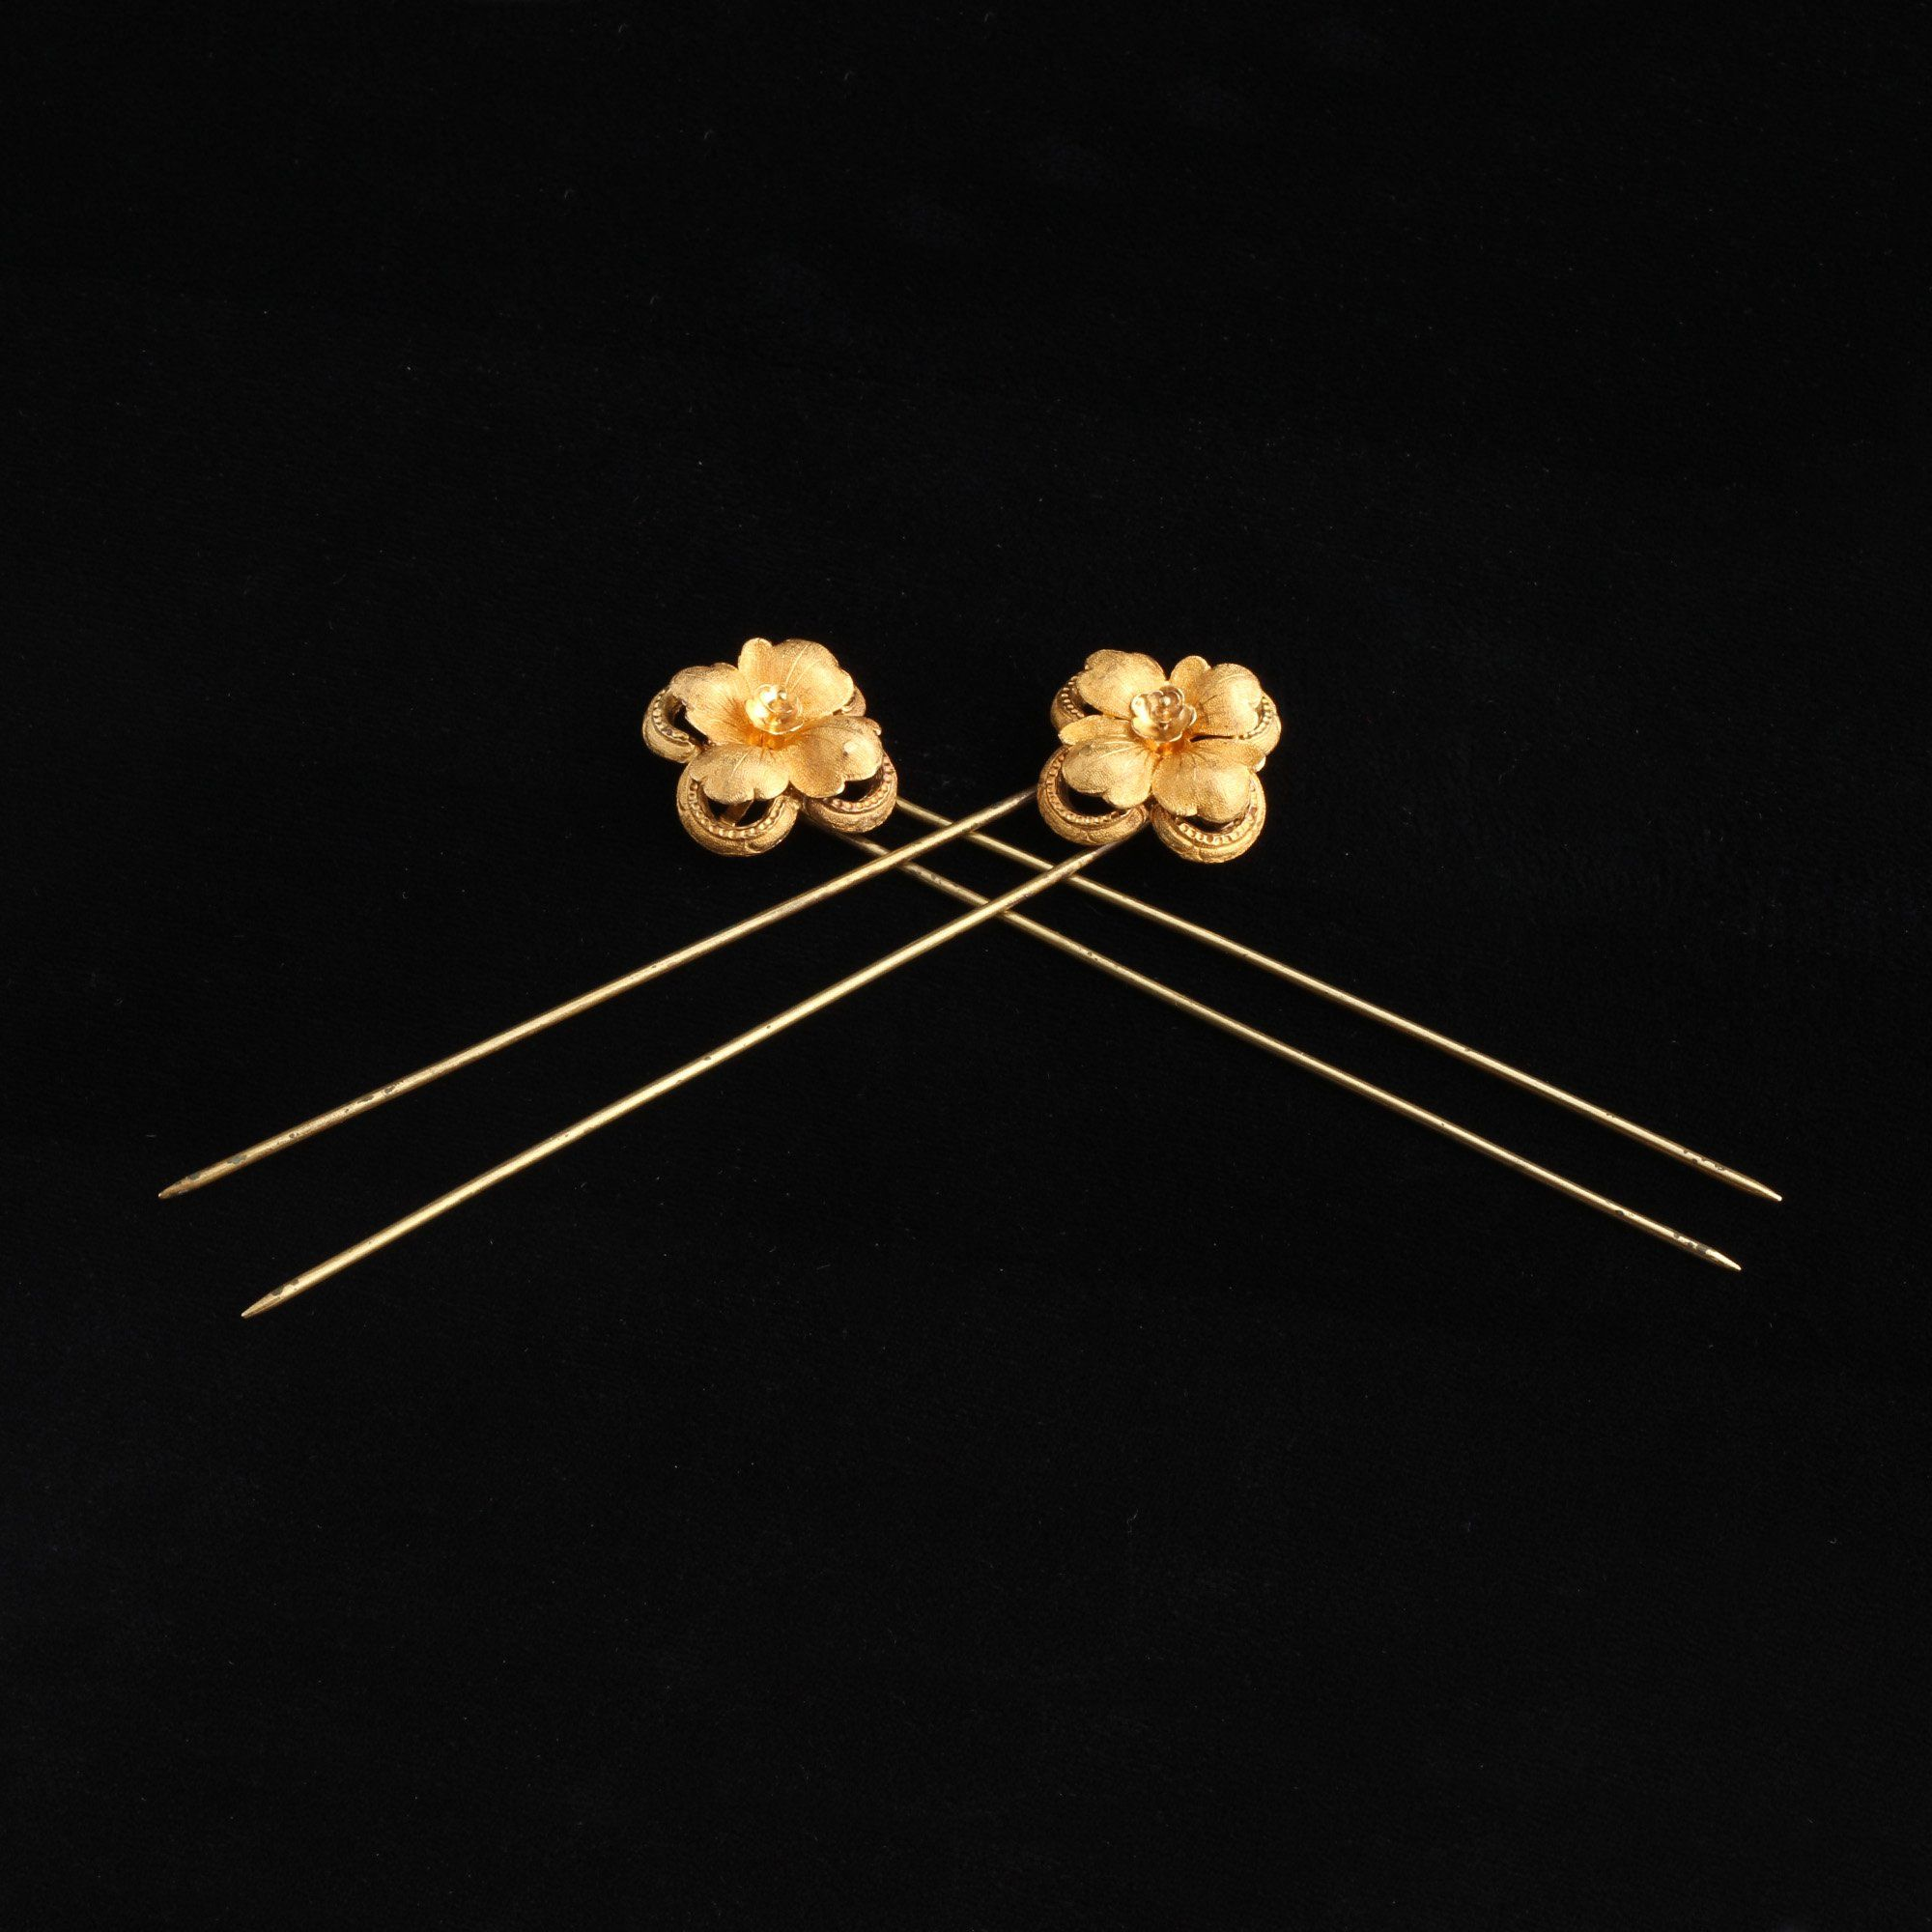 Detail of Victorian Gold and Silver Floral Hair Pins